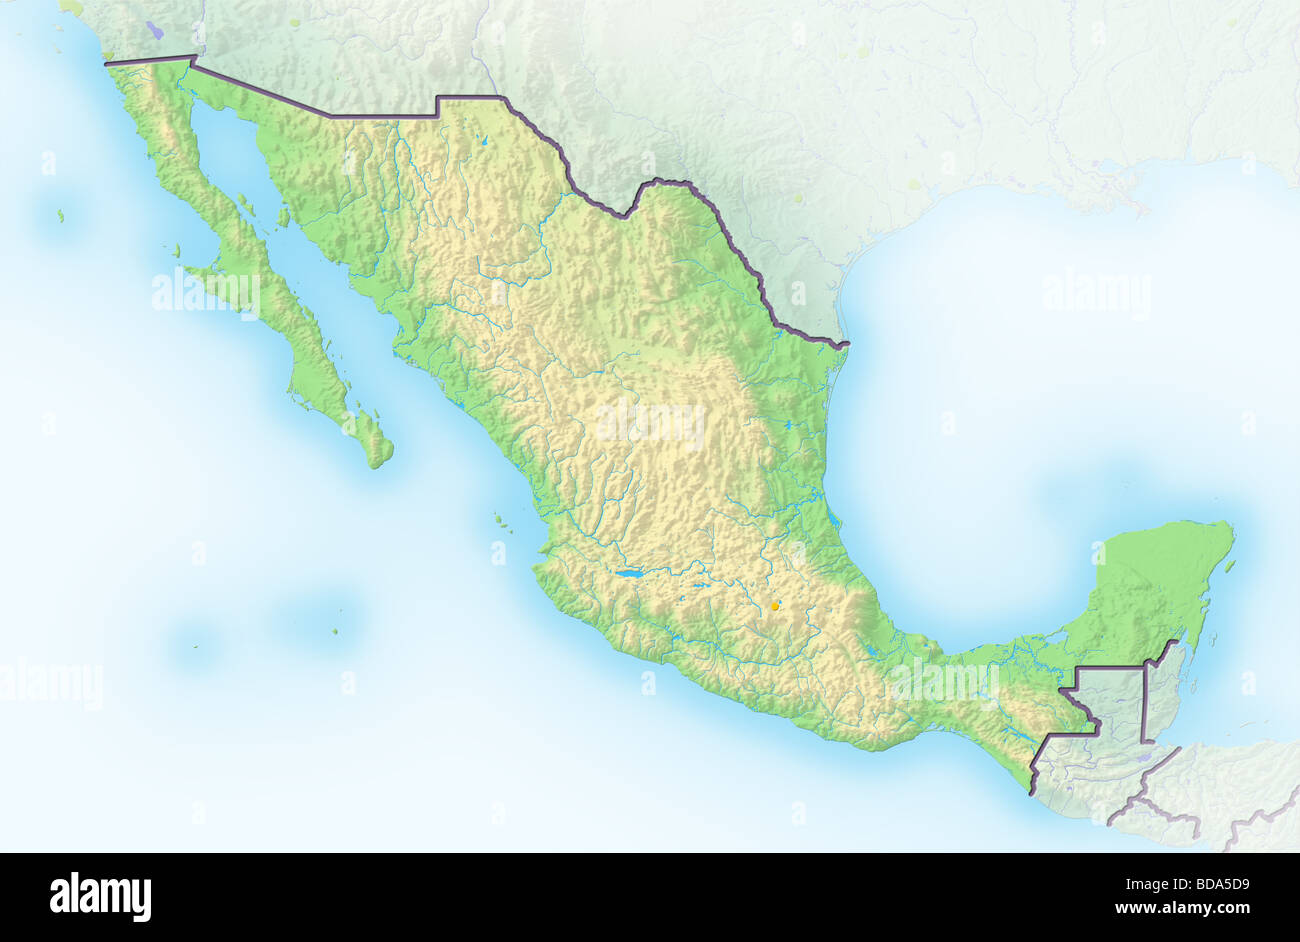 Mexico Physical Map Stock Photos & Mexico Physical Map Stock Images ...